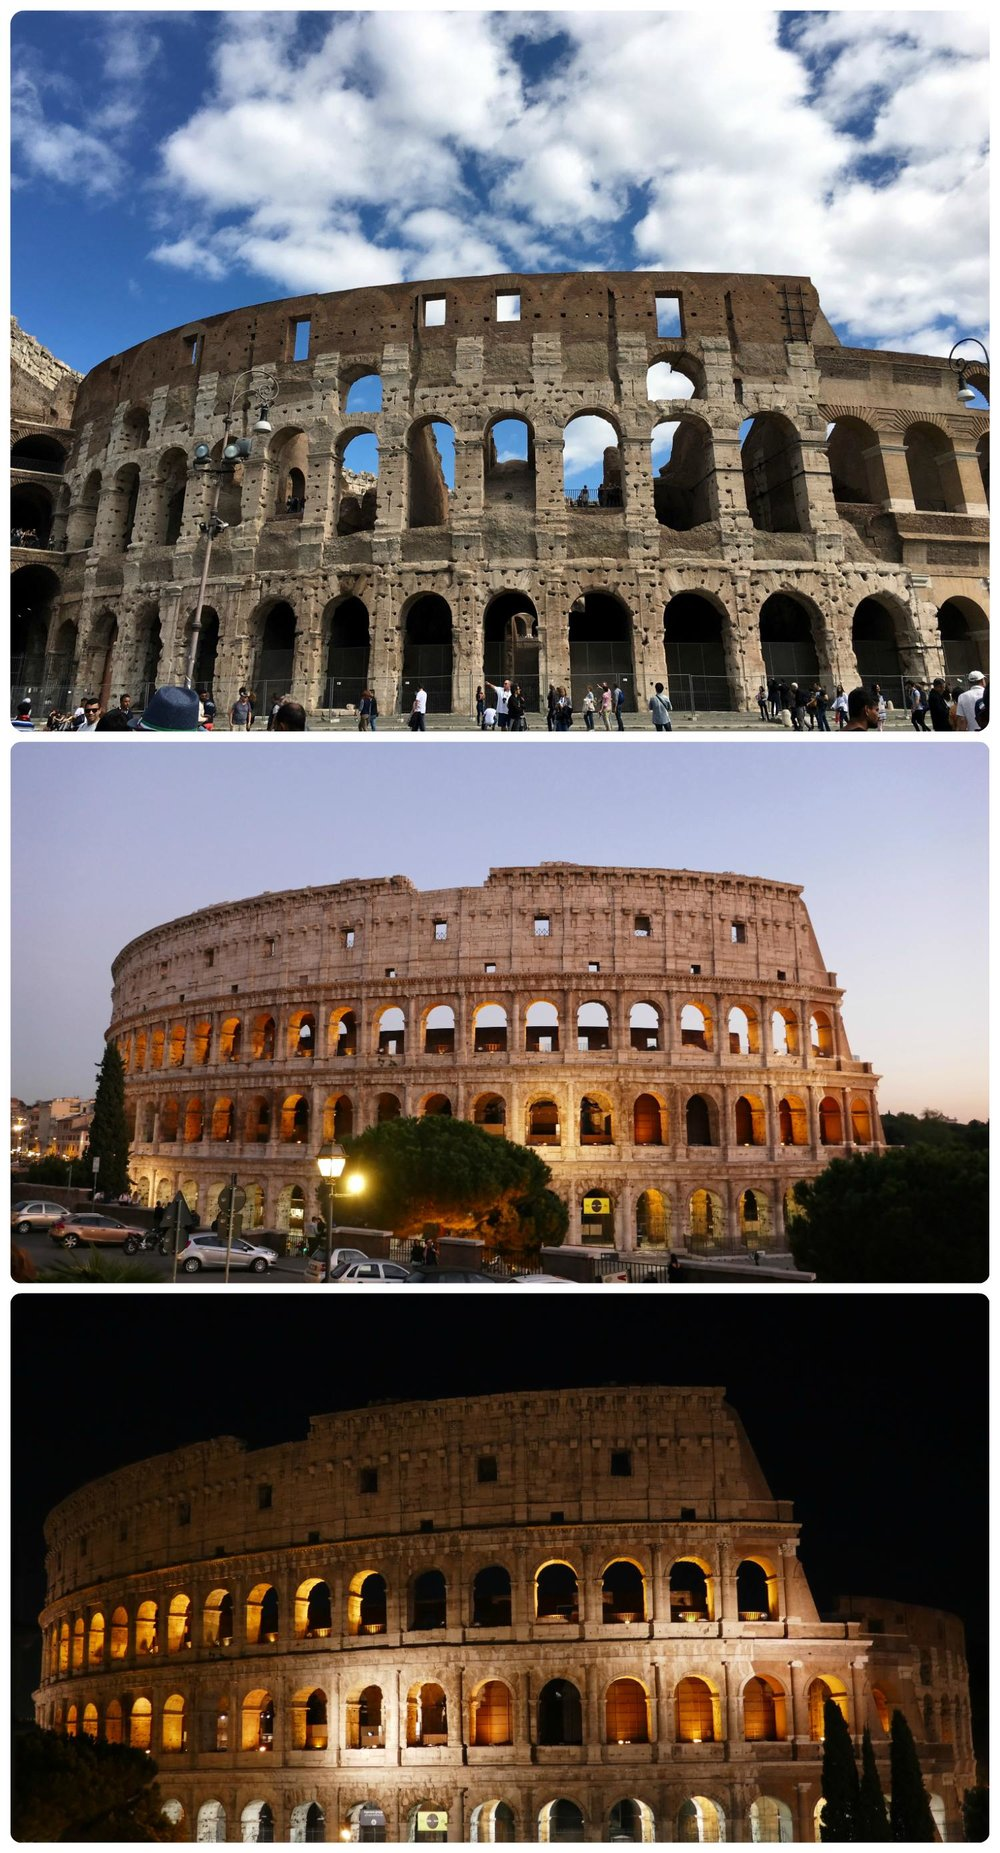 The Colosseum photographed during the day (top), at sunset (middle), and at night (bottom).